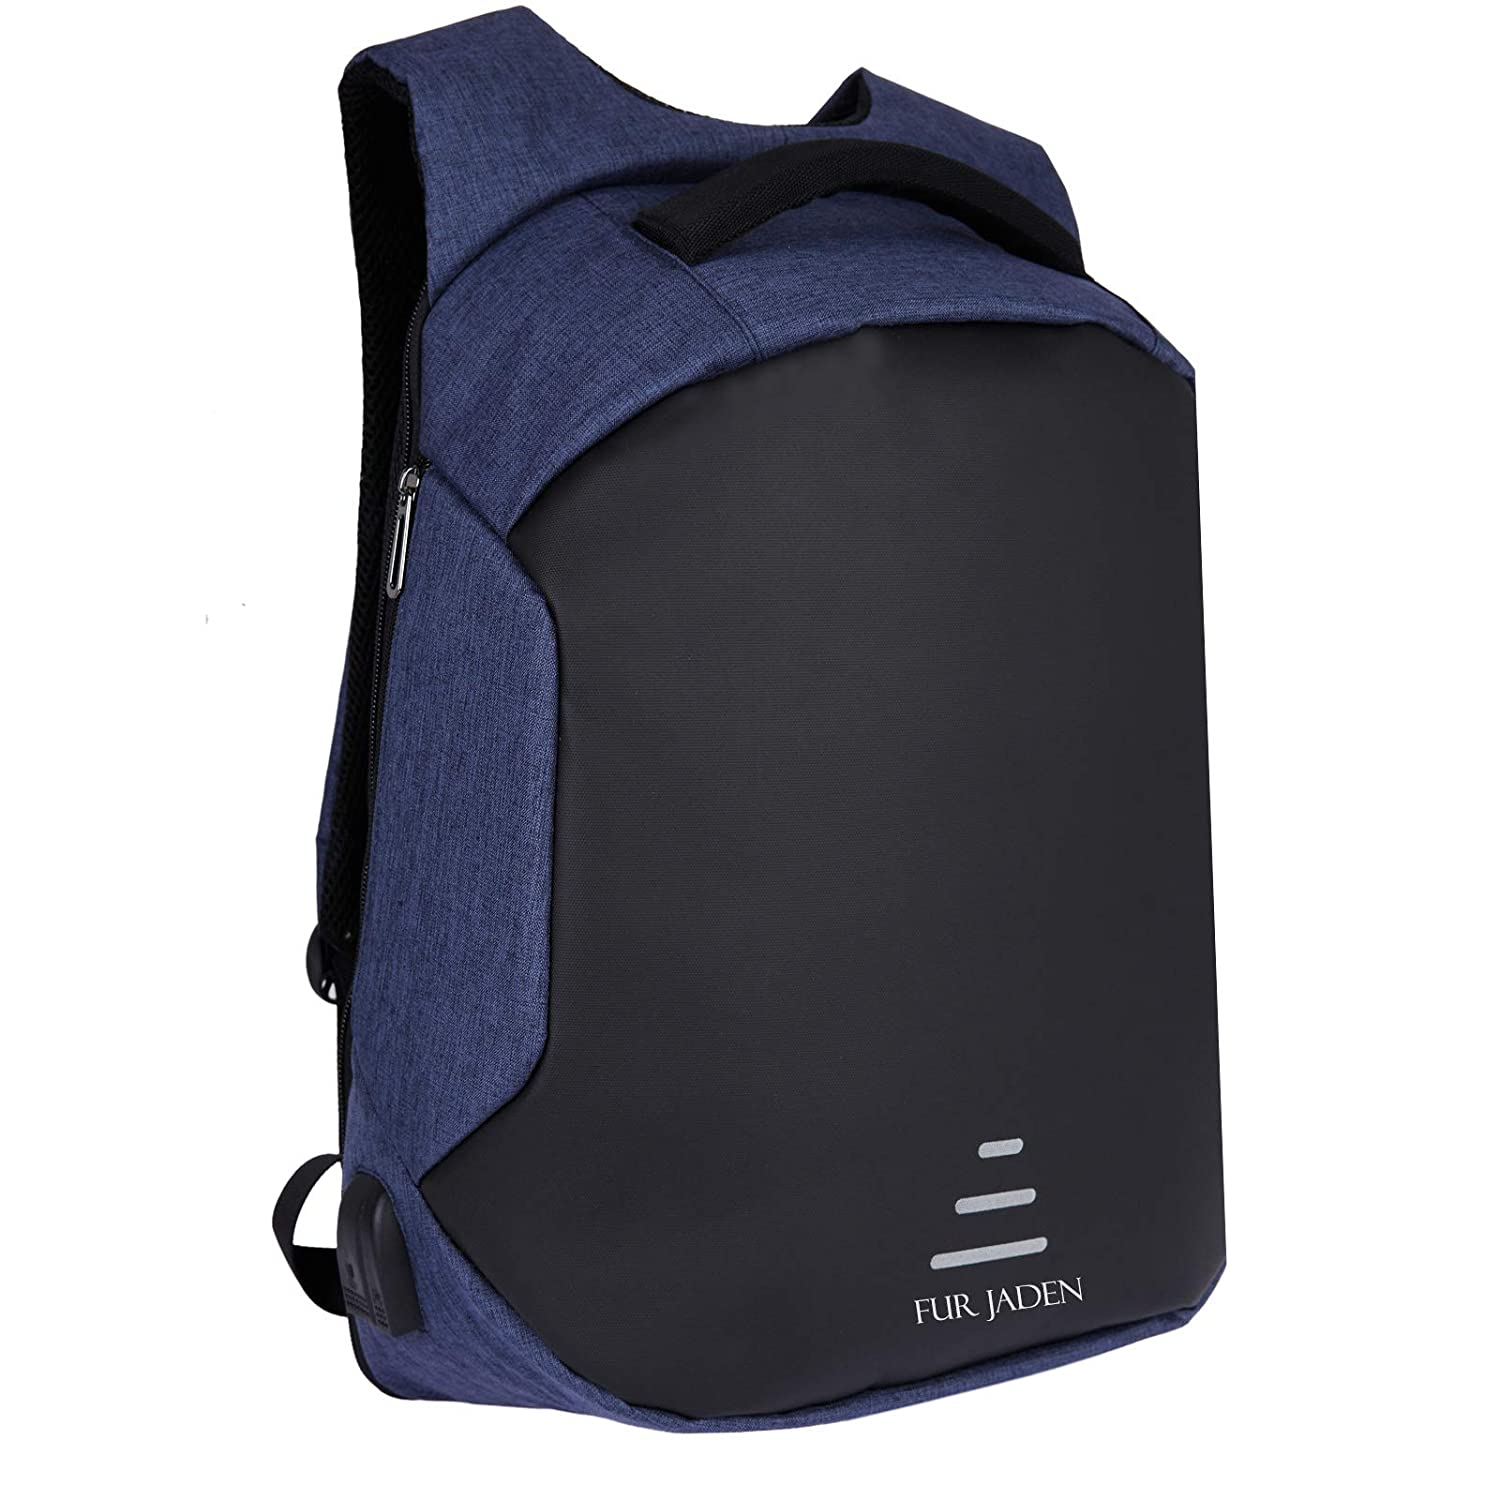 FUR JADEN Navy Anti Theft Casual Backpack with USB Charging